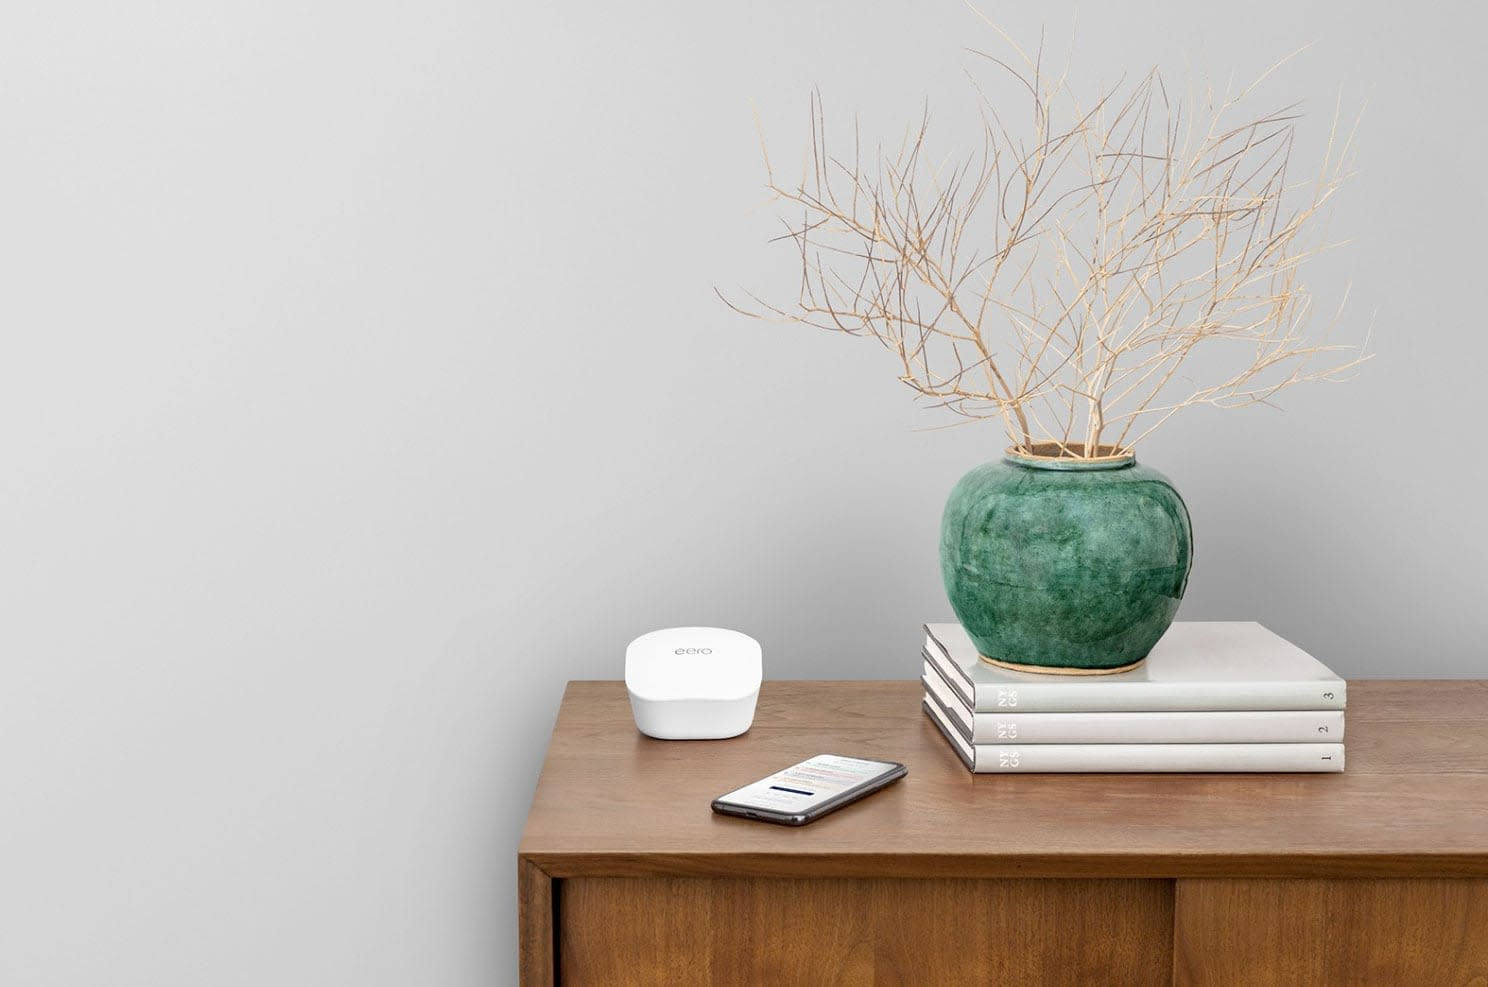 Amazon's new Eero mesh WiFi system is all about ease of use